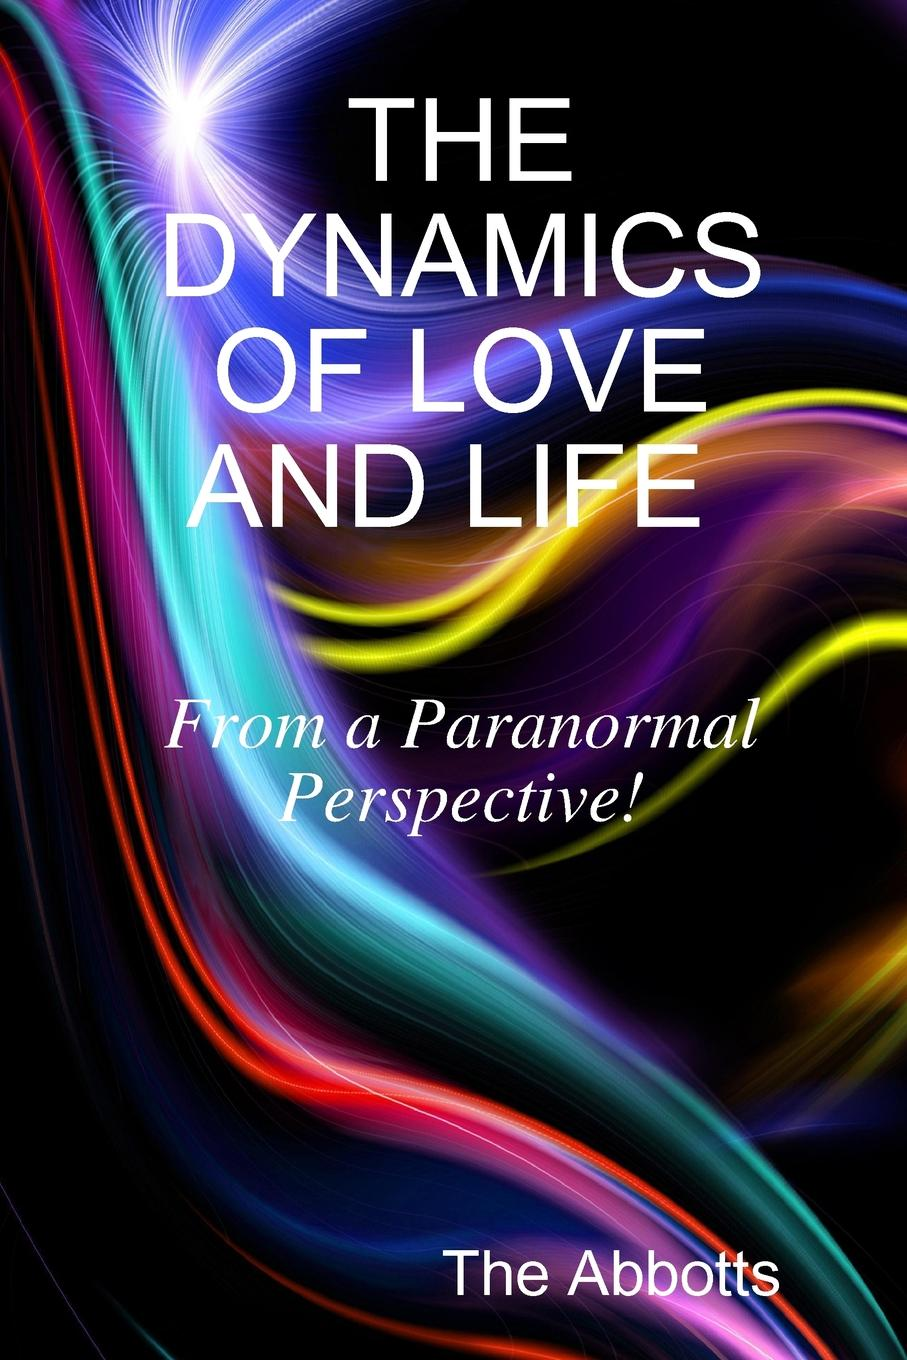 The Abbotts The Dynamics of Love and Life - From a Paranormal Perspective. rao g v elements of structural dynamics a new perspective